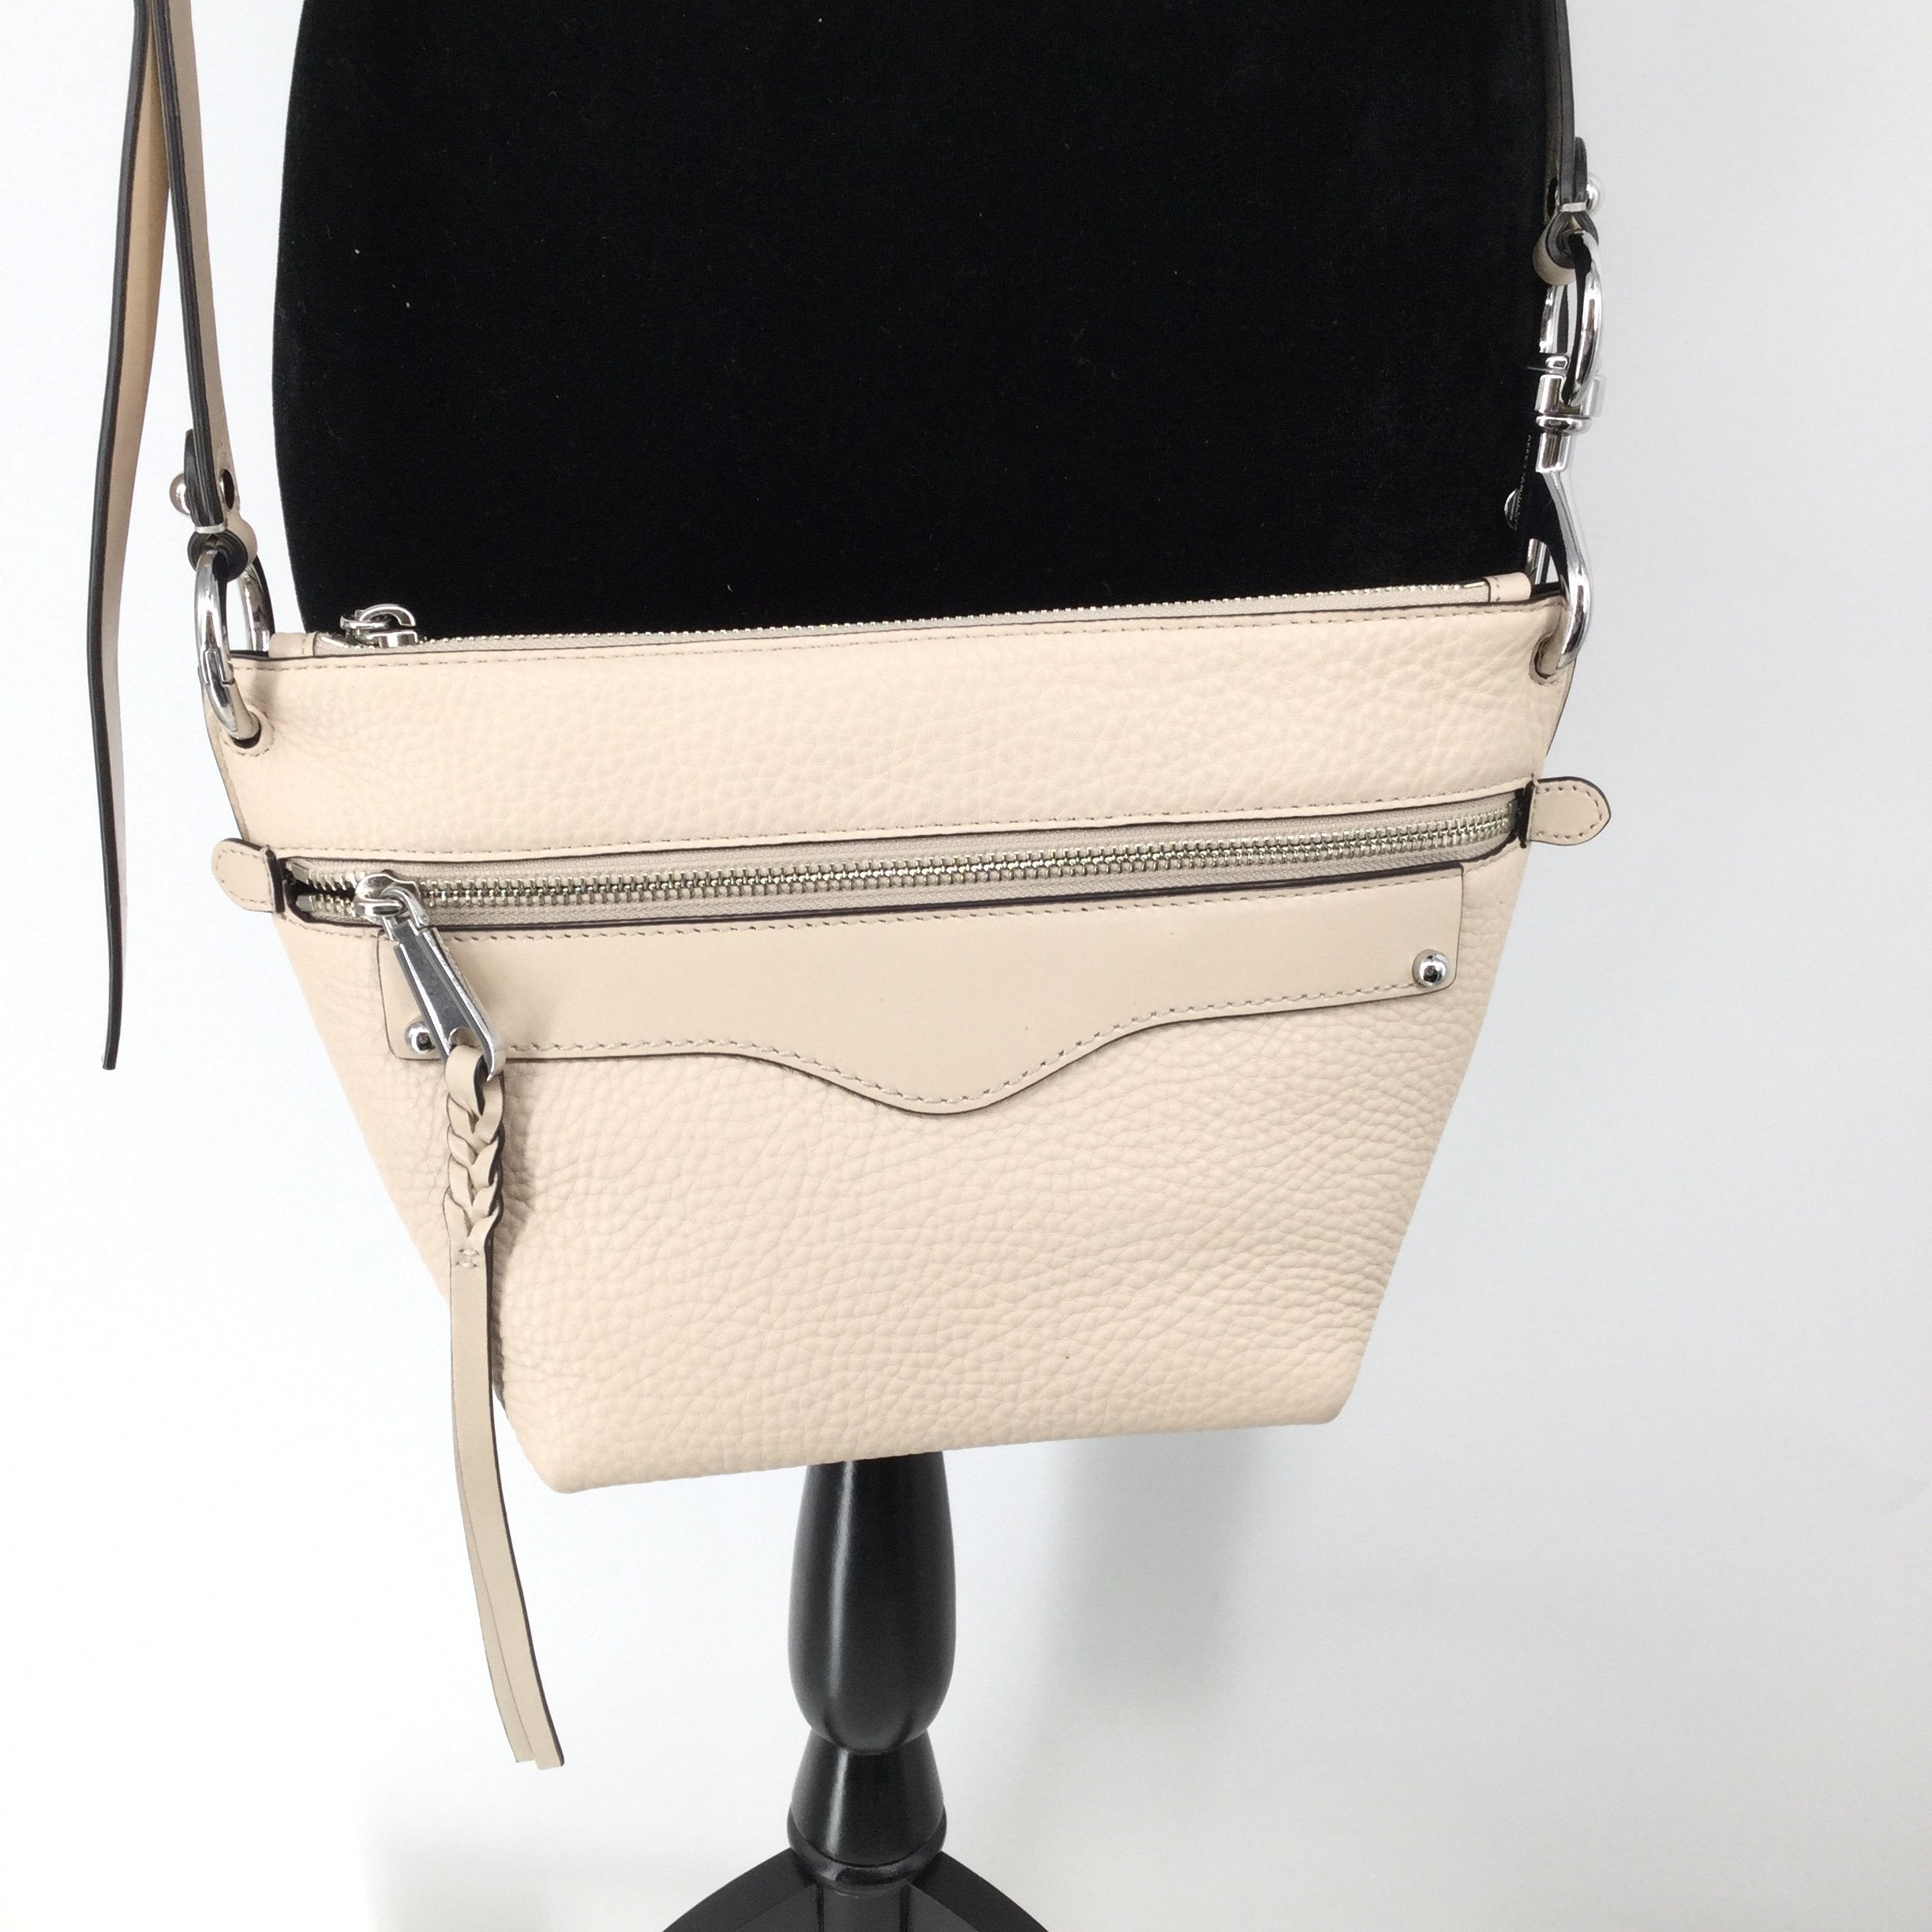 Cream Rebecca Minkoff medium sizedHandbag  - <P>CREAM LEATHER REBECCA MINKOFF CROSS-BODY WITH REMOVABLE STRAP. TWO EXTERIOR POCKETS AND ONE INTERIOR POCKET. LIKE NEW CONDITION AND ALSO COMES WITH DUST BAG.</P>